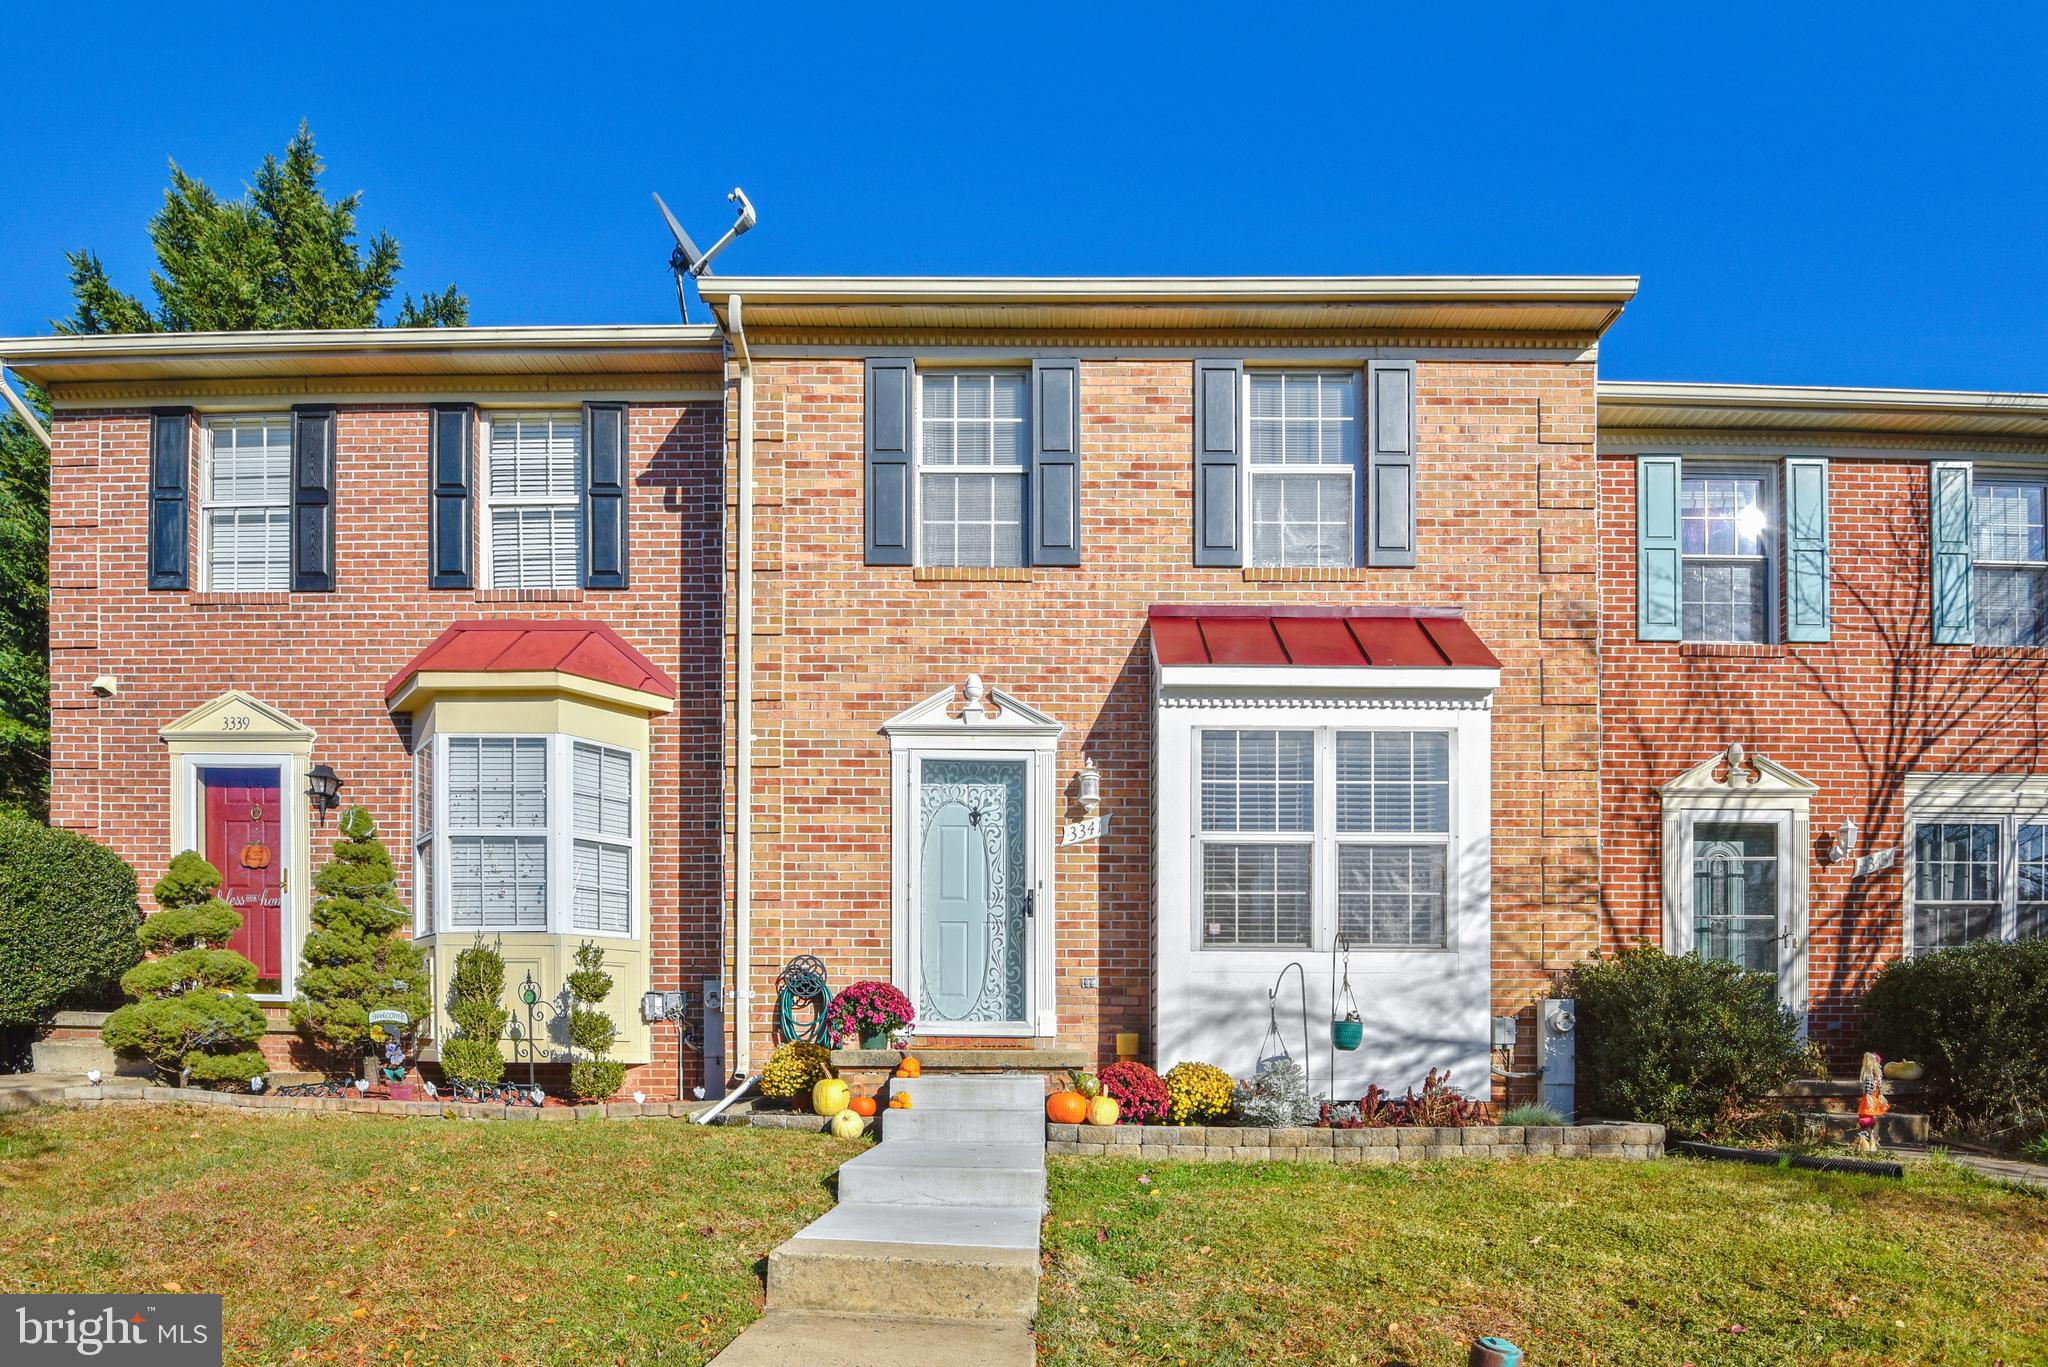 Sweet Constant Friendship Townhome that is HGTV ready! This bright and sunny townhome comes with Gle